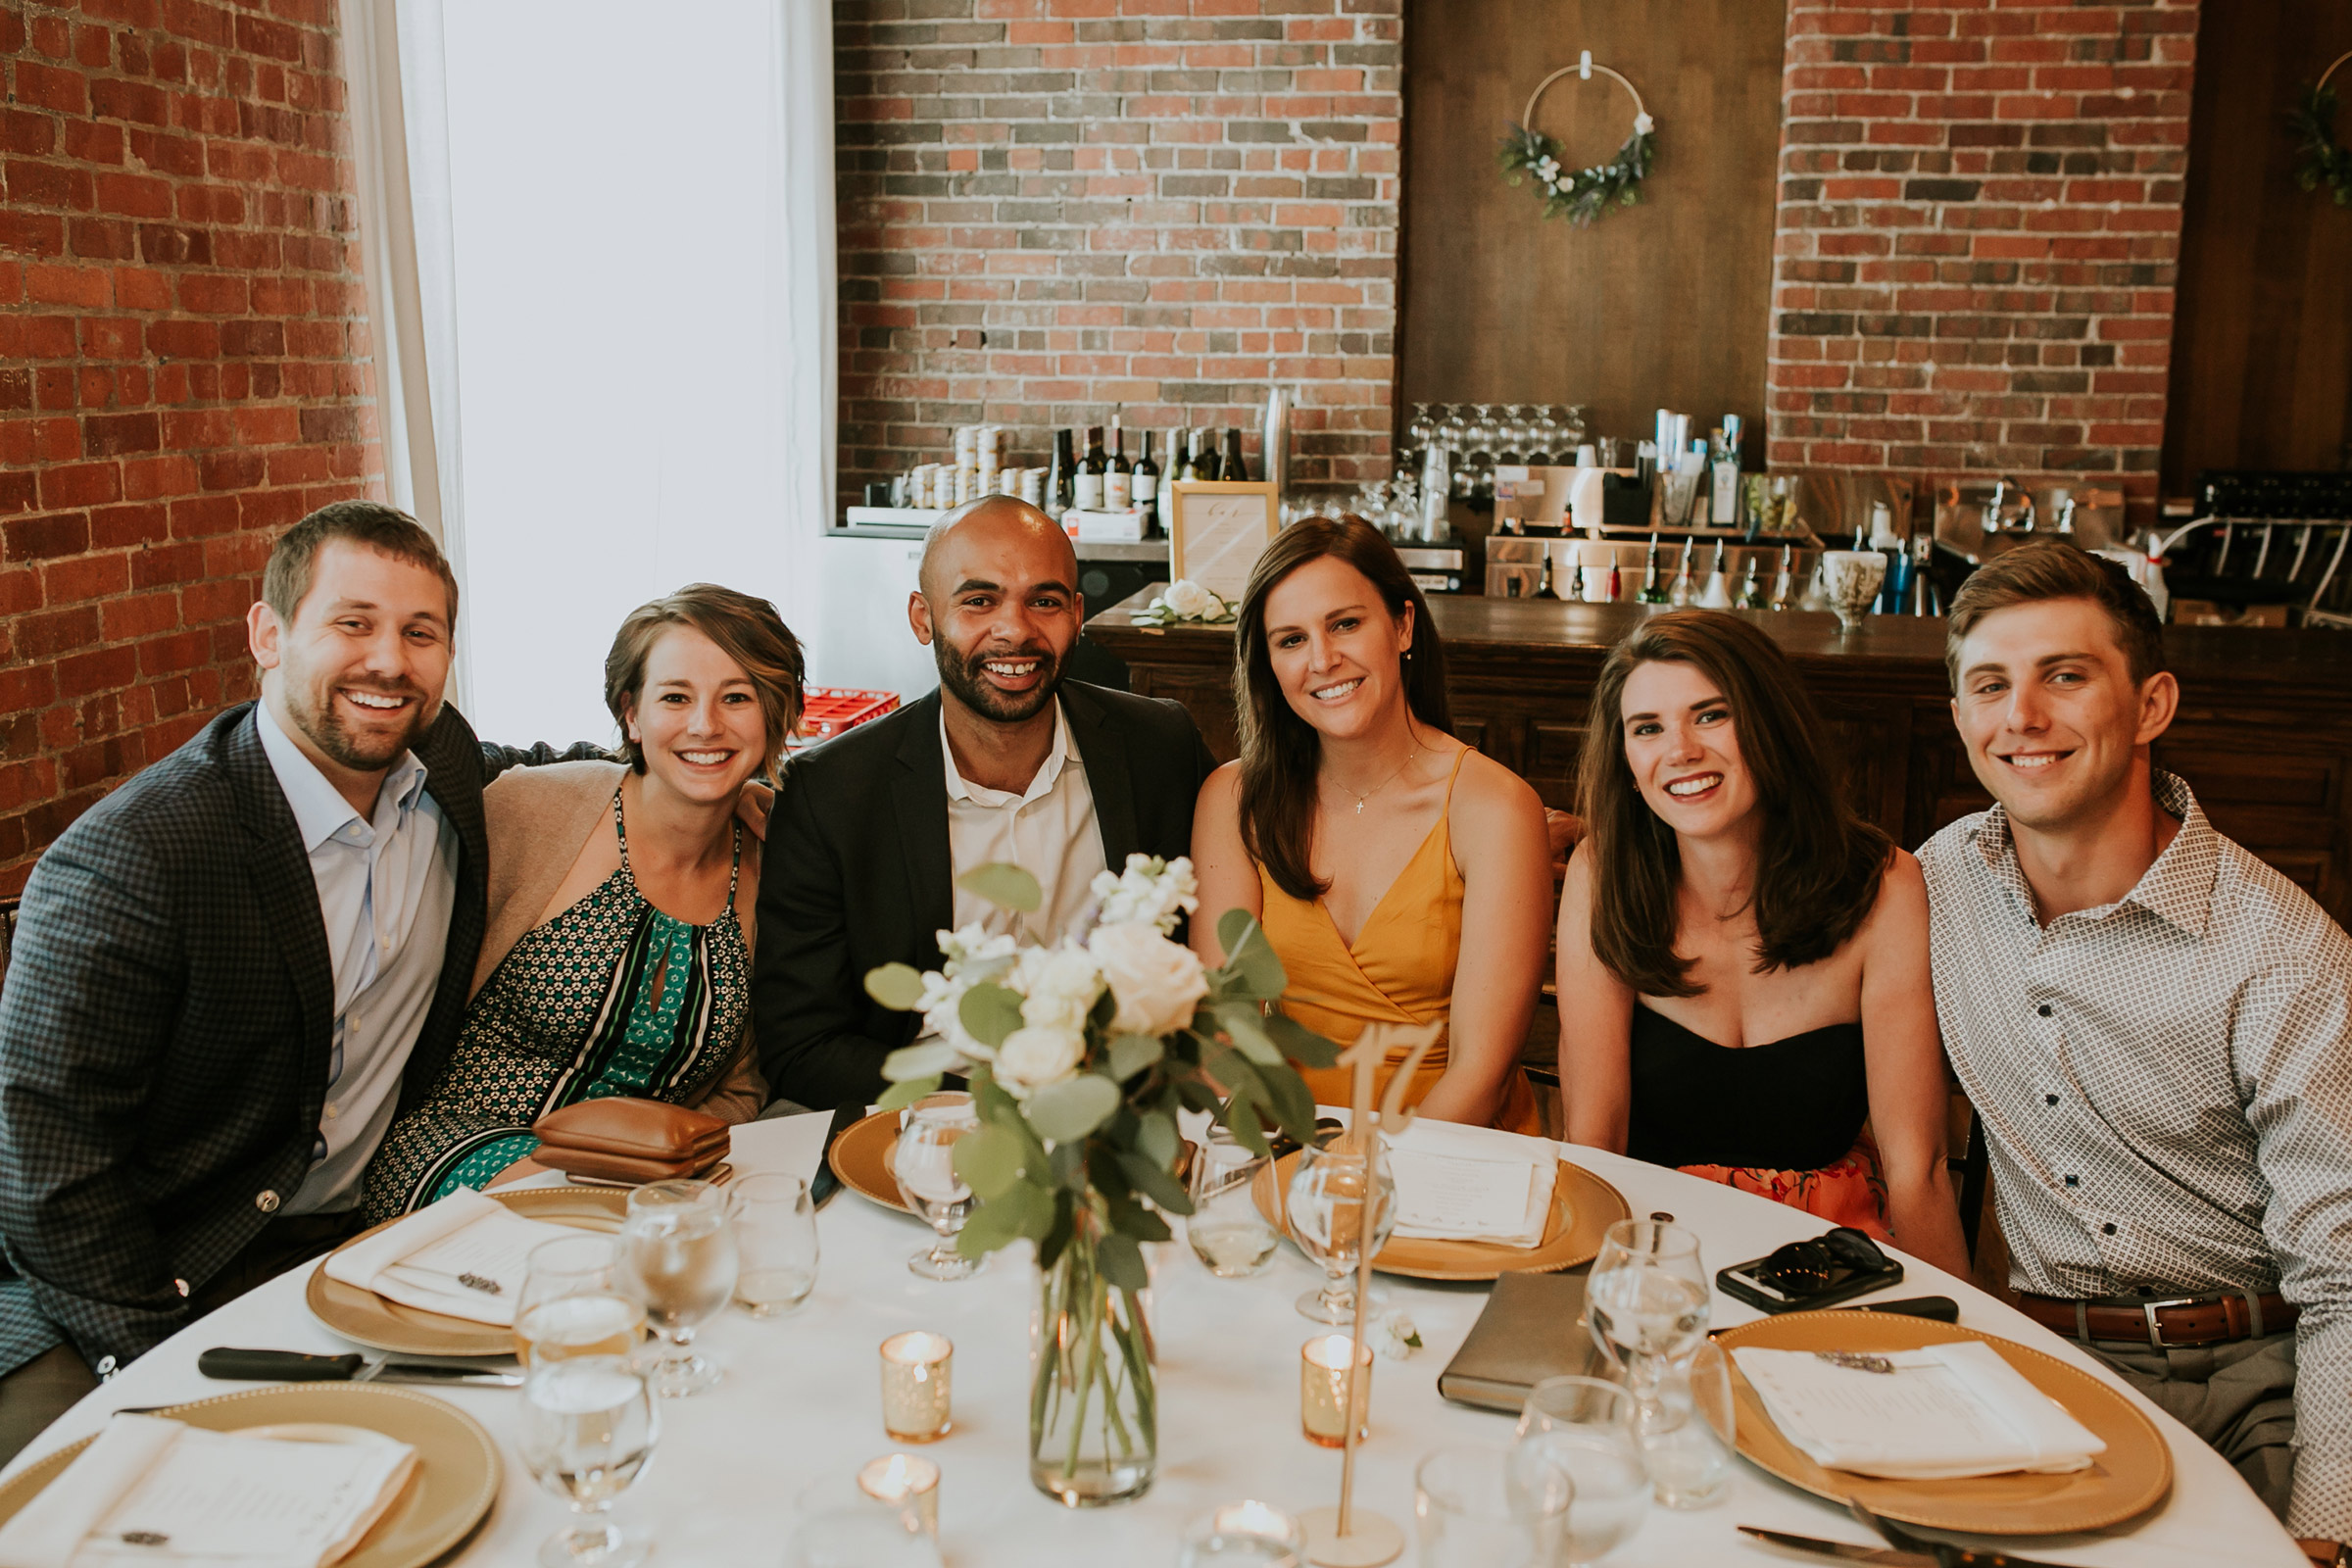 mr-mrs-hull-reception-guests-at-table-taproom-desmoines-iowa-raelyn-ramey-photography-557.jpg